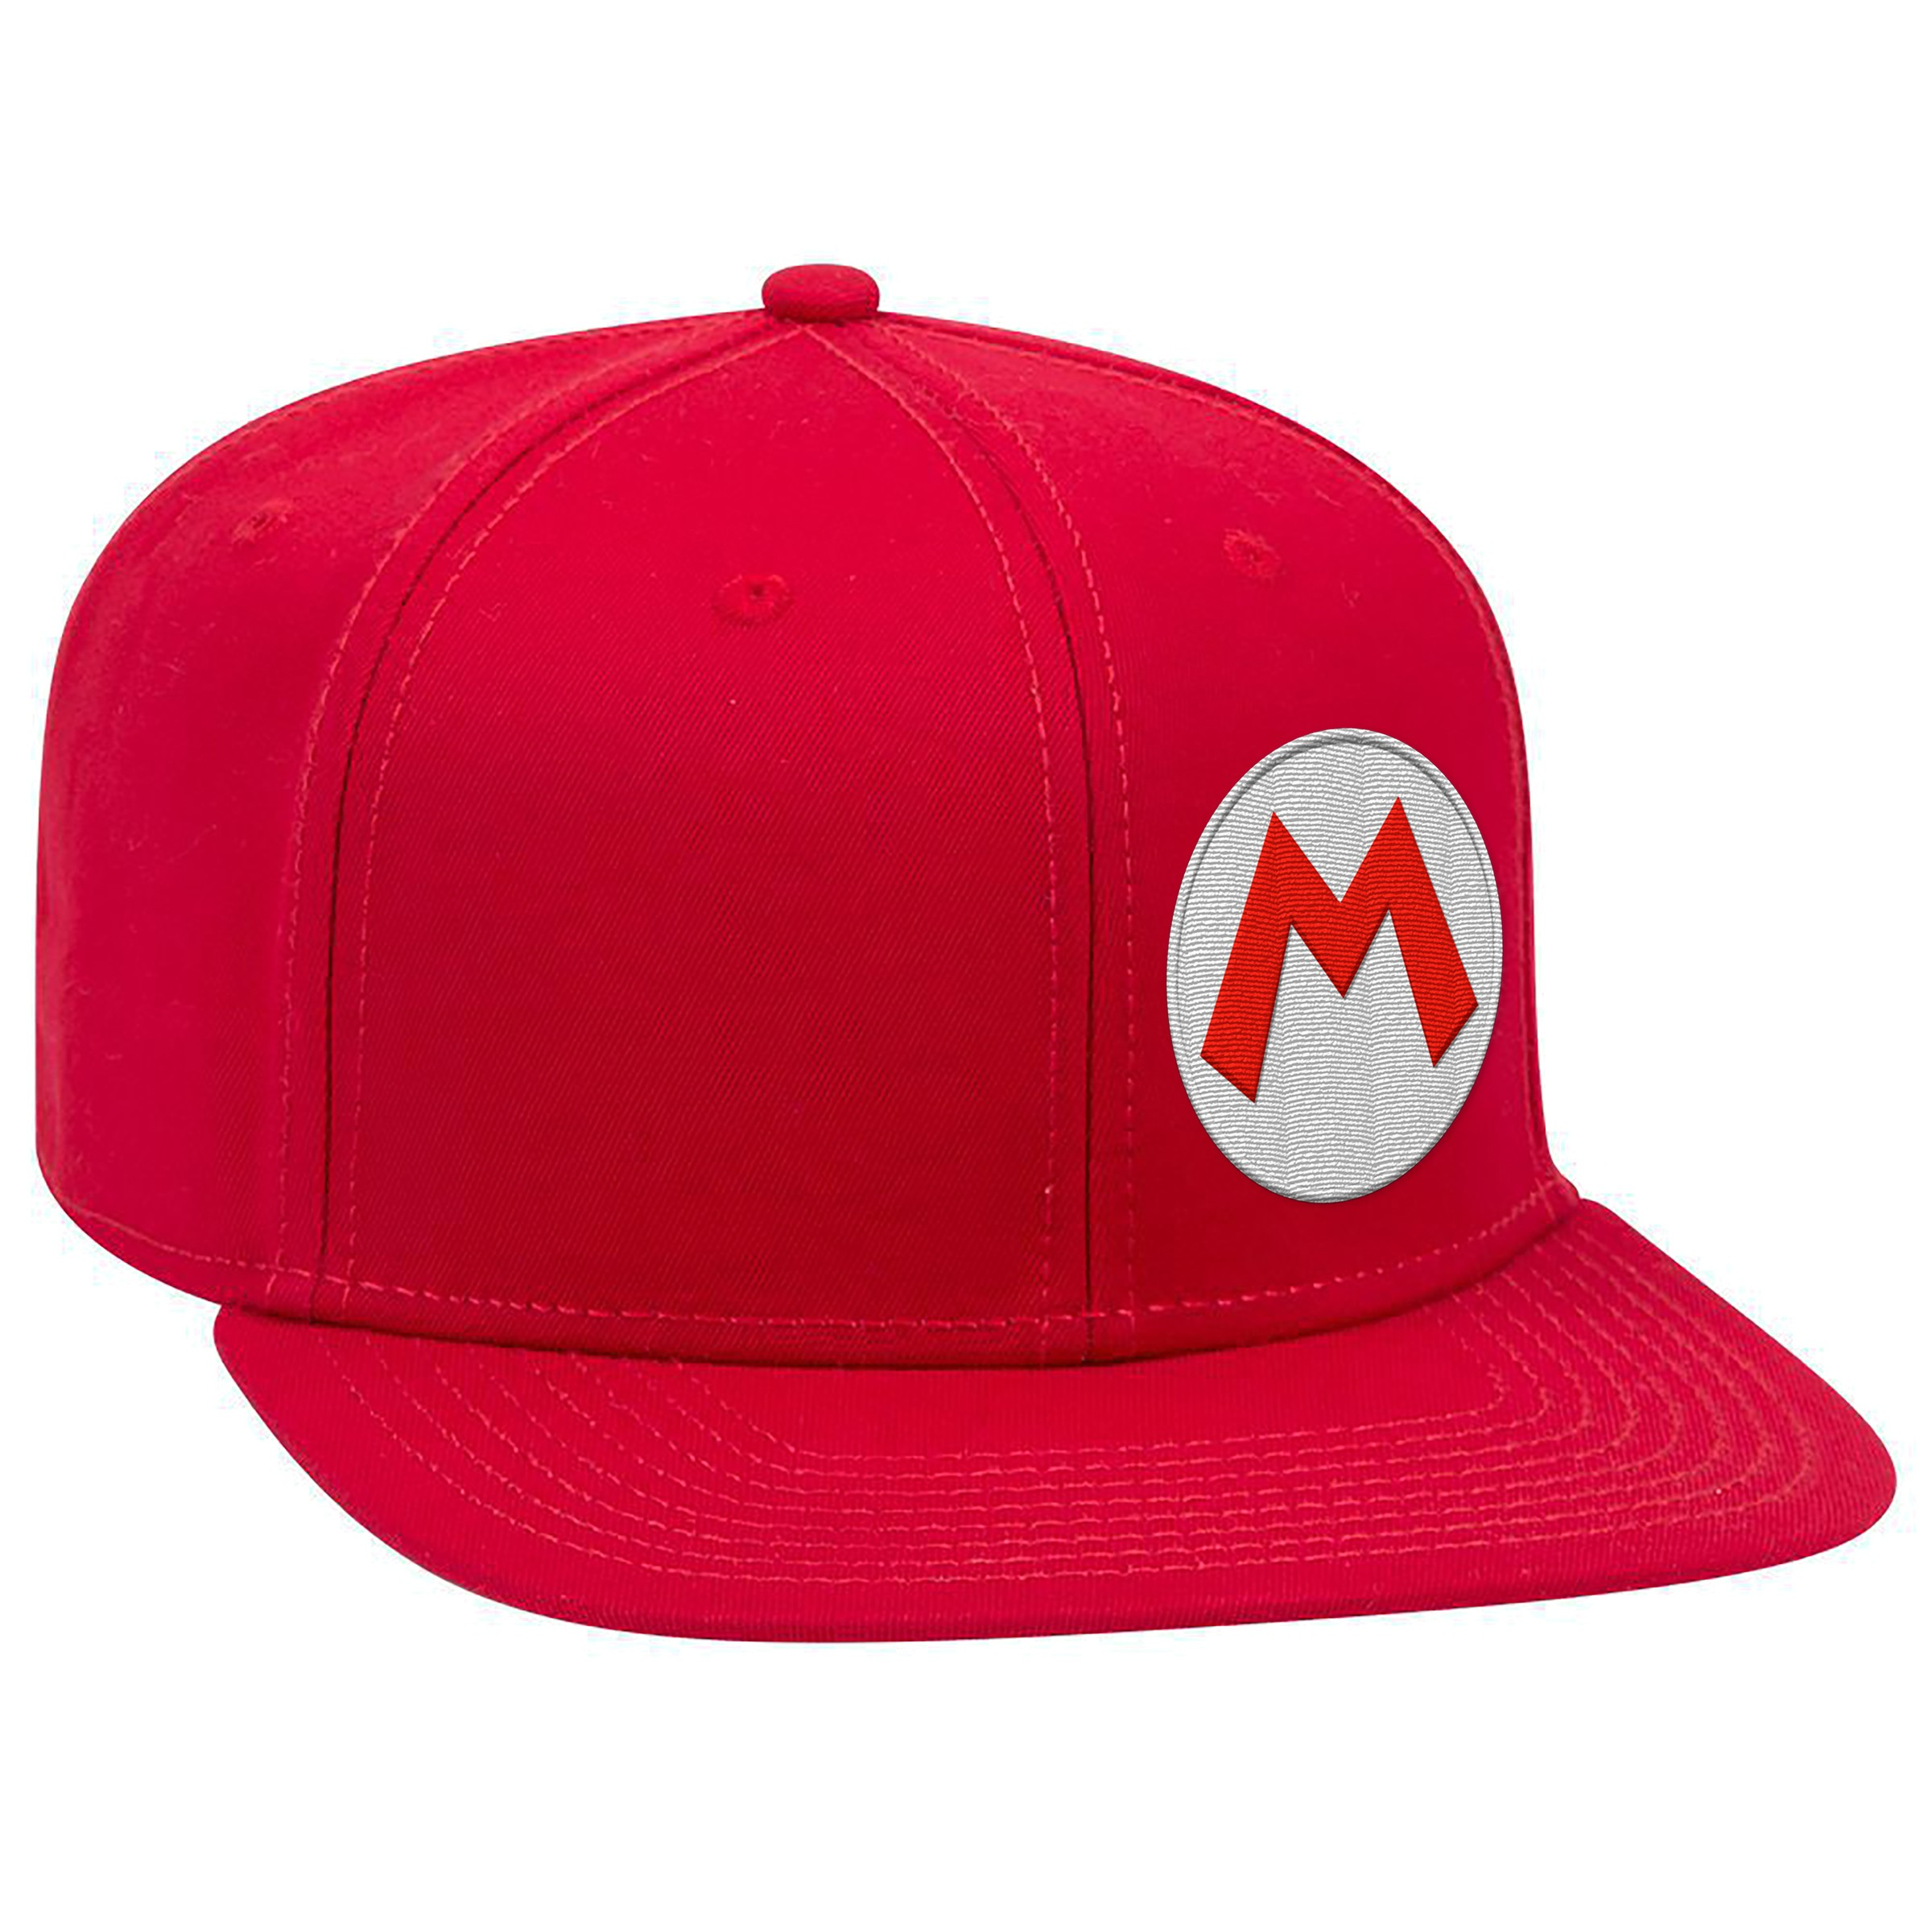 "Super Mario™ ""Mario M"" Flat Bill Hat - Officially Licensed by Nintendo"